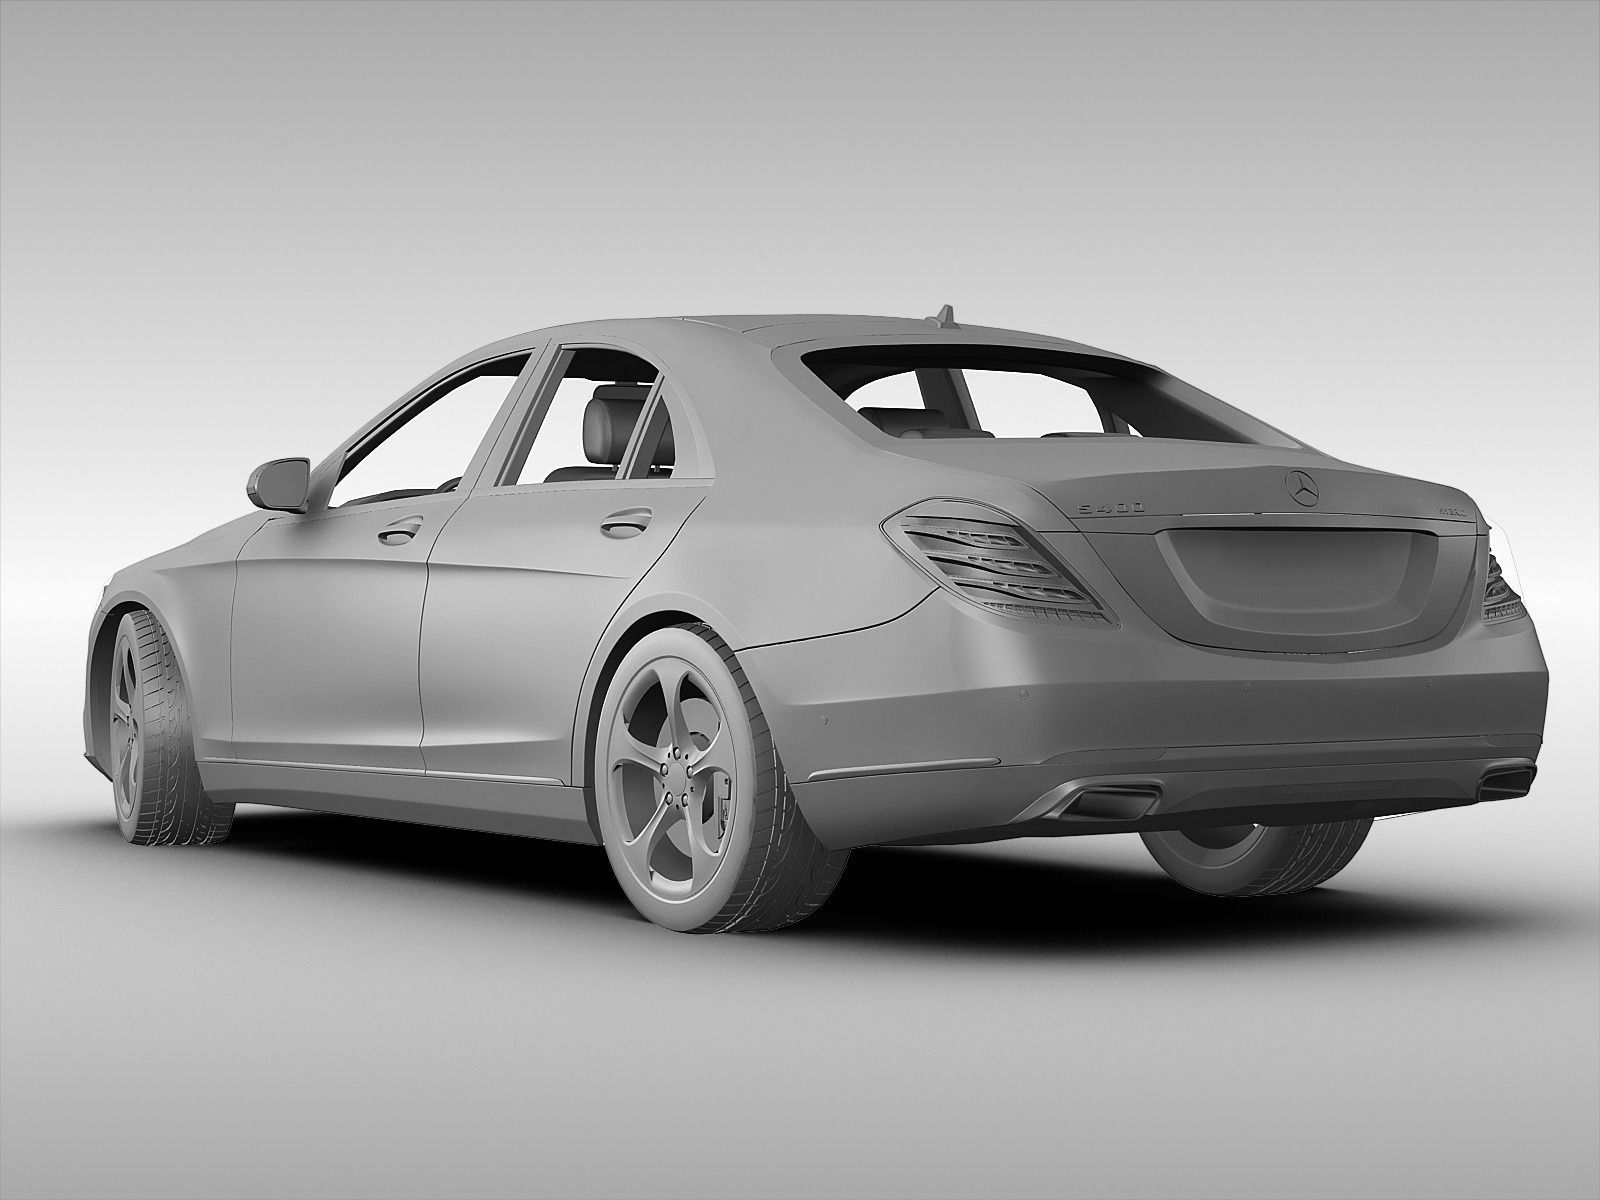 Mercedes benz s class 2014 3d model max obj 3ds fbx for New mercedes benz s class 2014